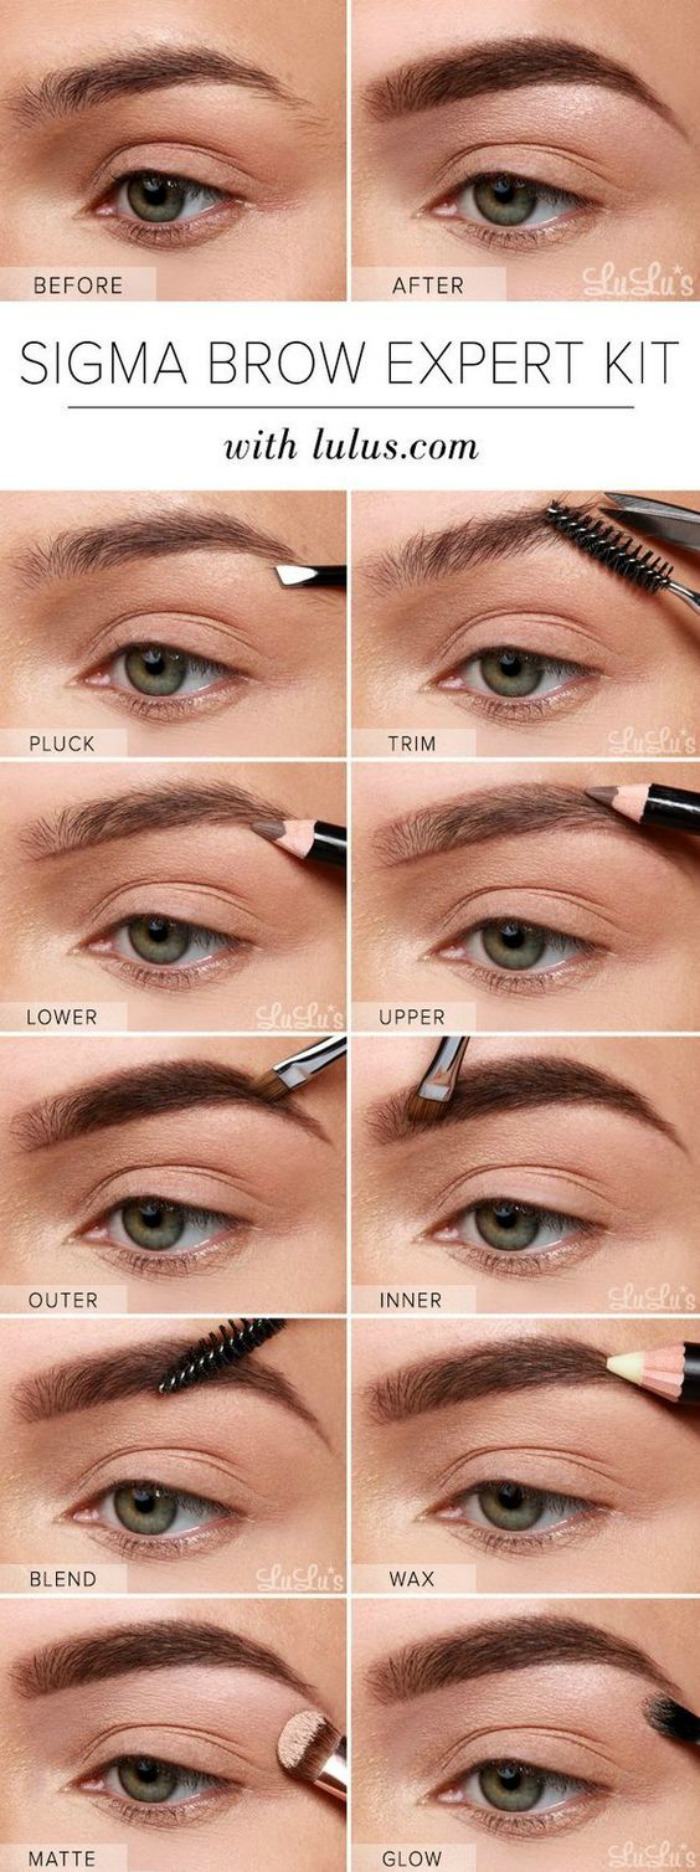 Eyebrow Styles: How To Get The Perfect Eyebrow